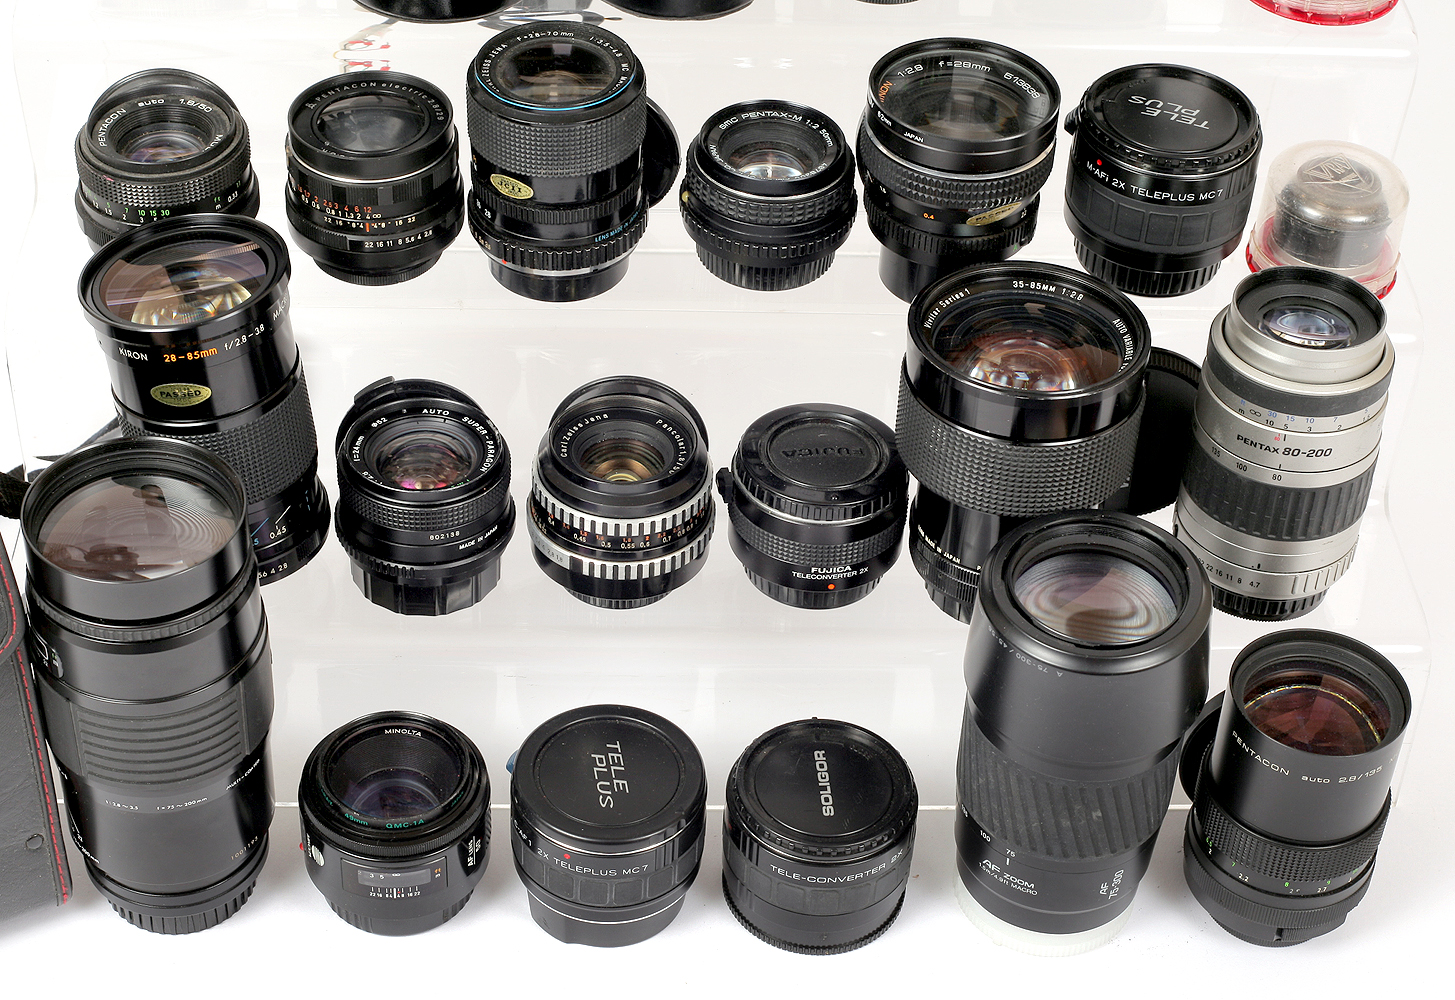 Lot 2A - Approximately 24 Various Lenses & Converters, etc.